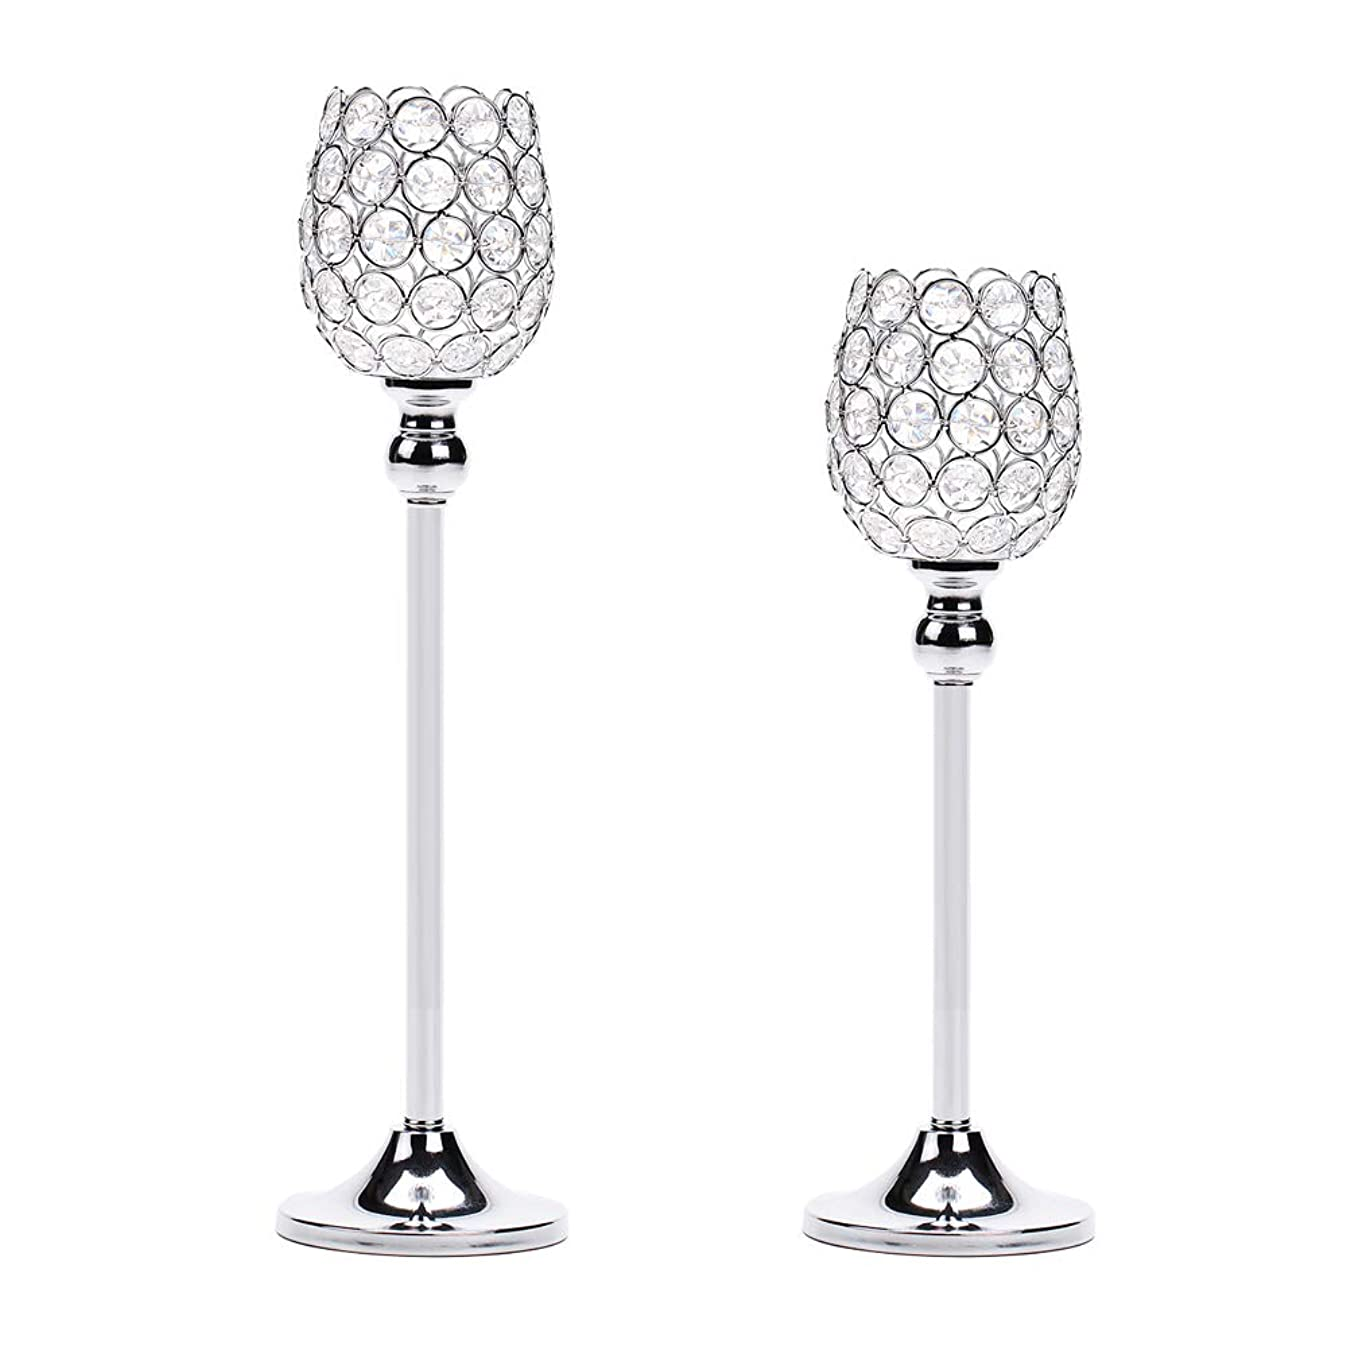 Manvi Silver Crystal Candle Holders Set of 2, Metal Pillar Tealight Candlestick Holders for Wedding Kitchen Dinning Table Centerpiece Decorative, Christmas Housewarming Gifts